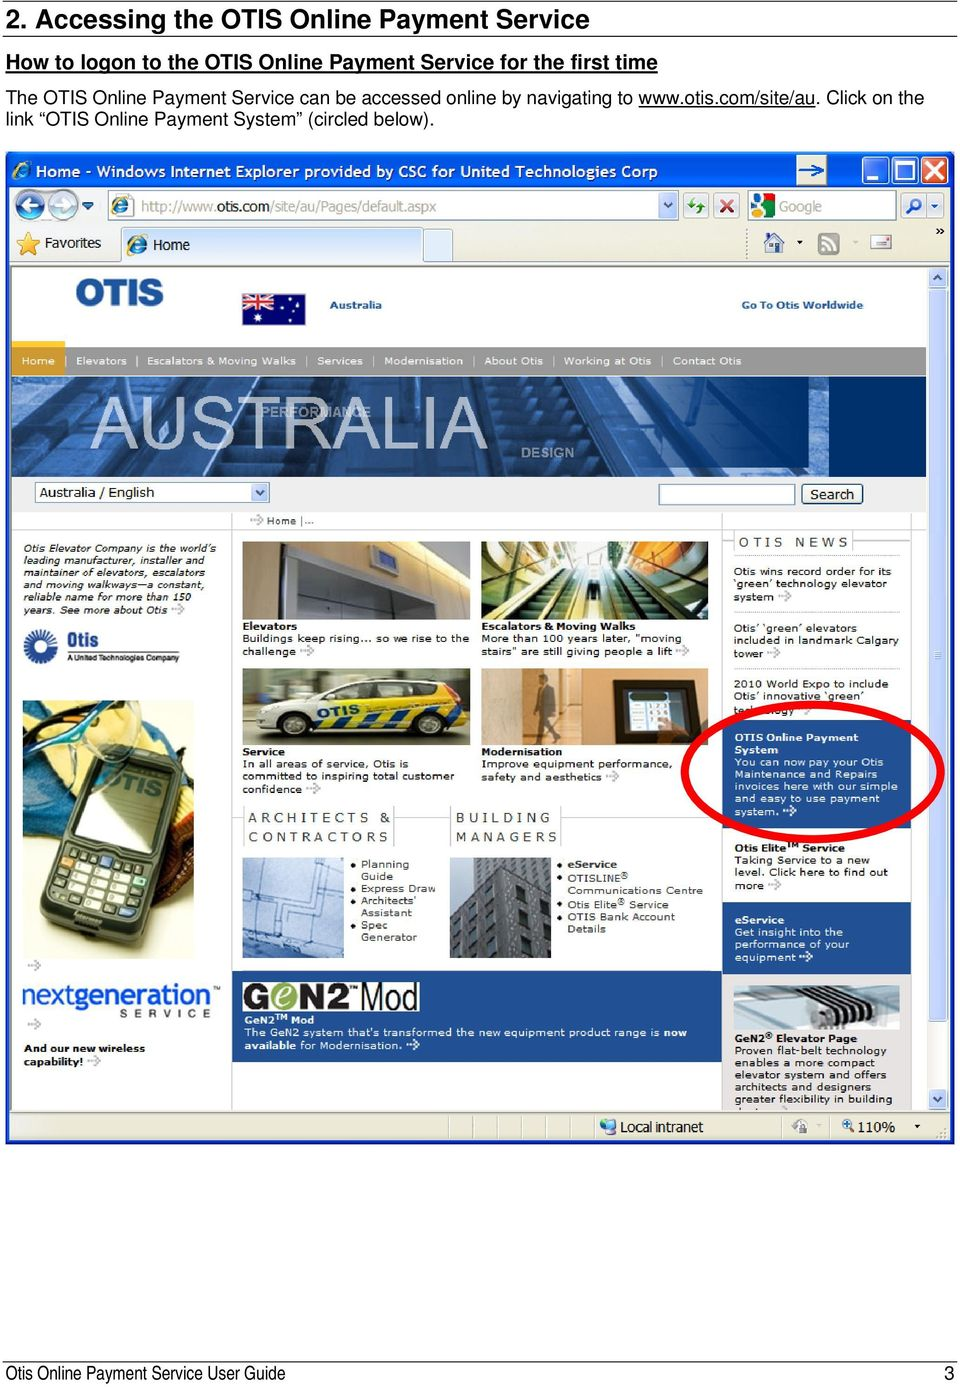 accessed online by navigating to www.otis.com/site/au.